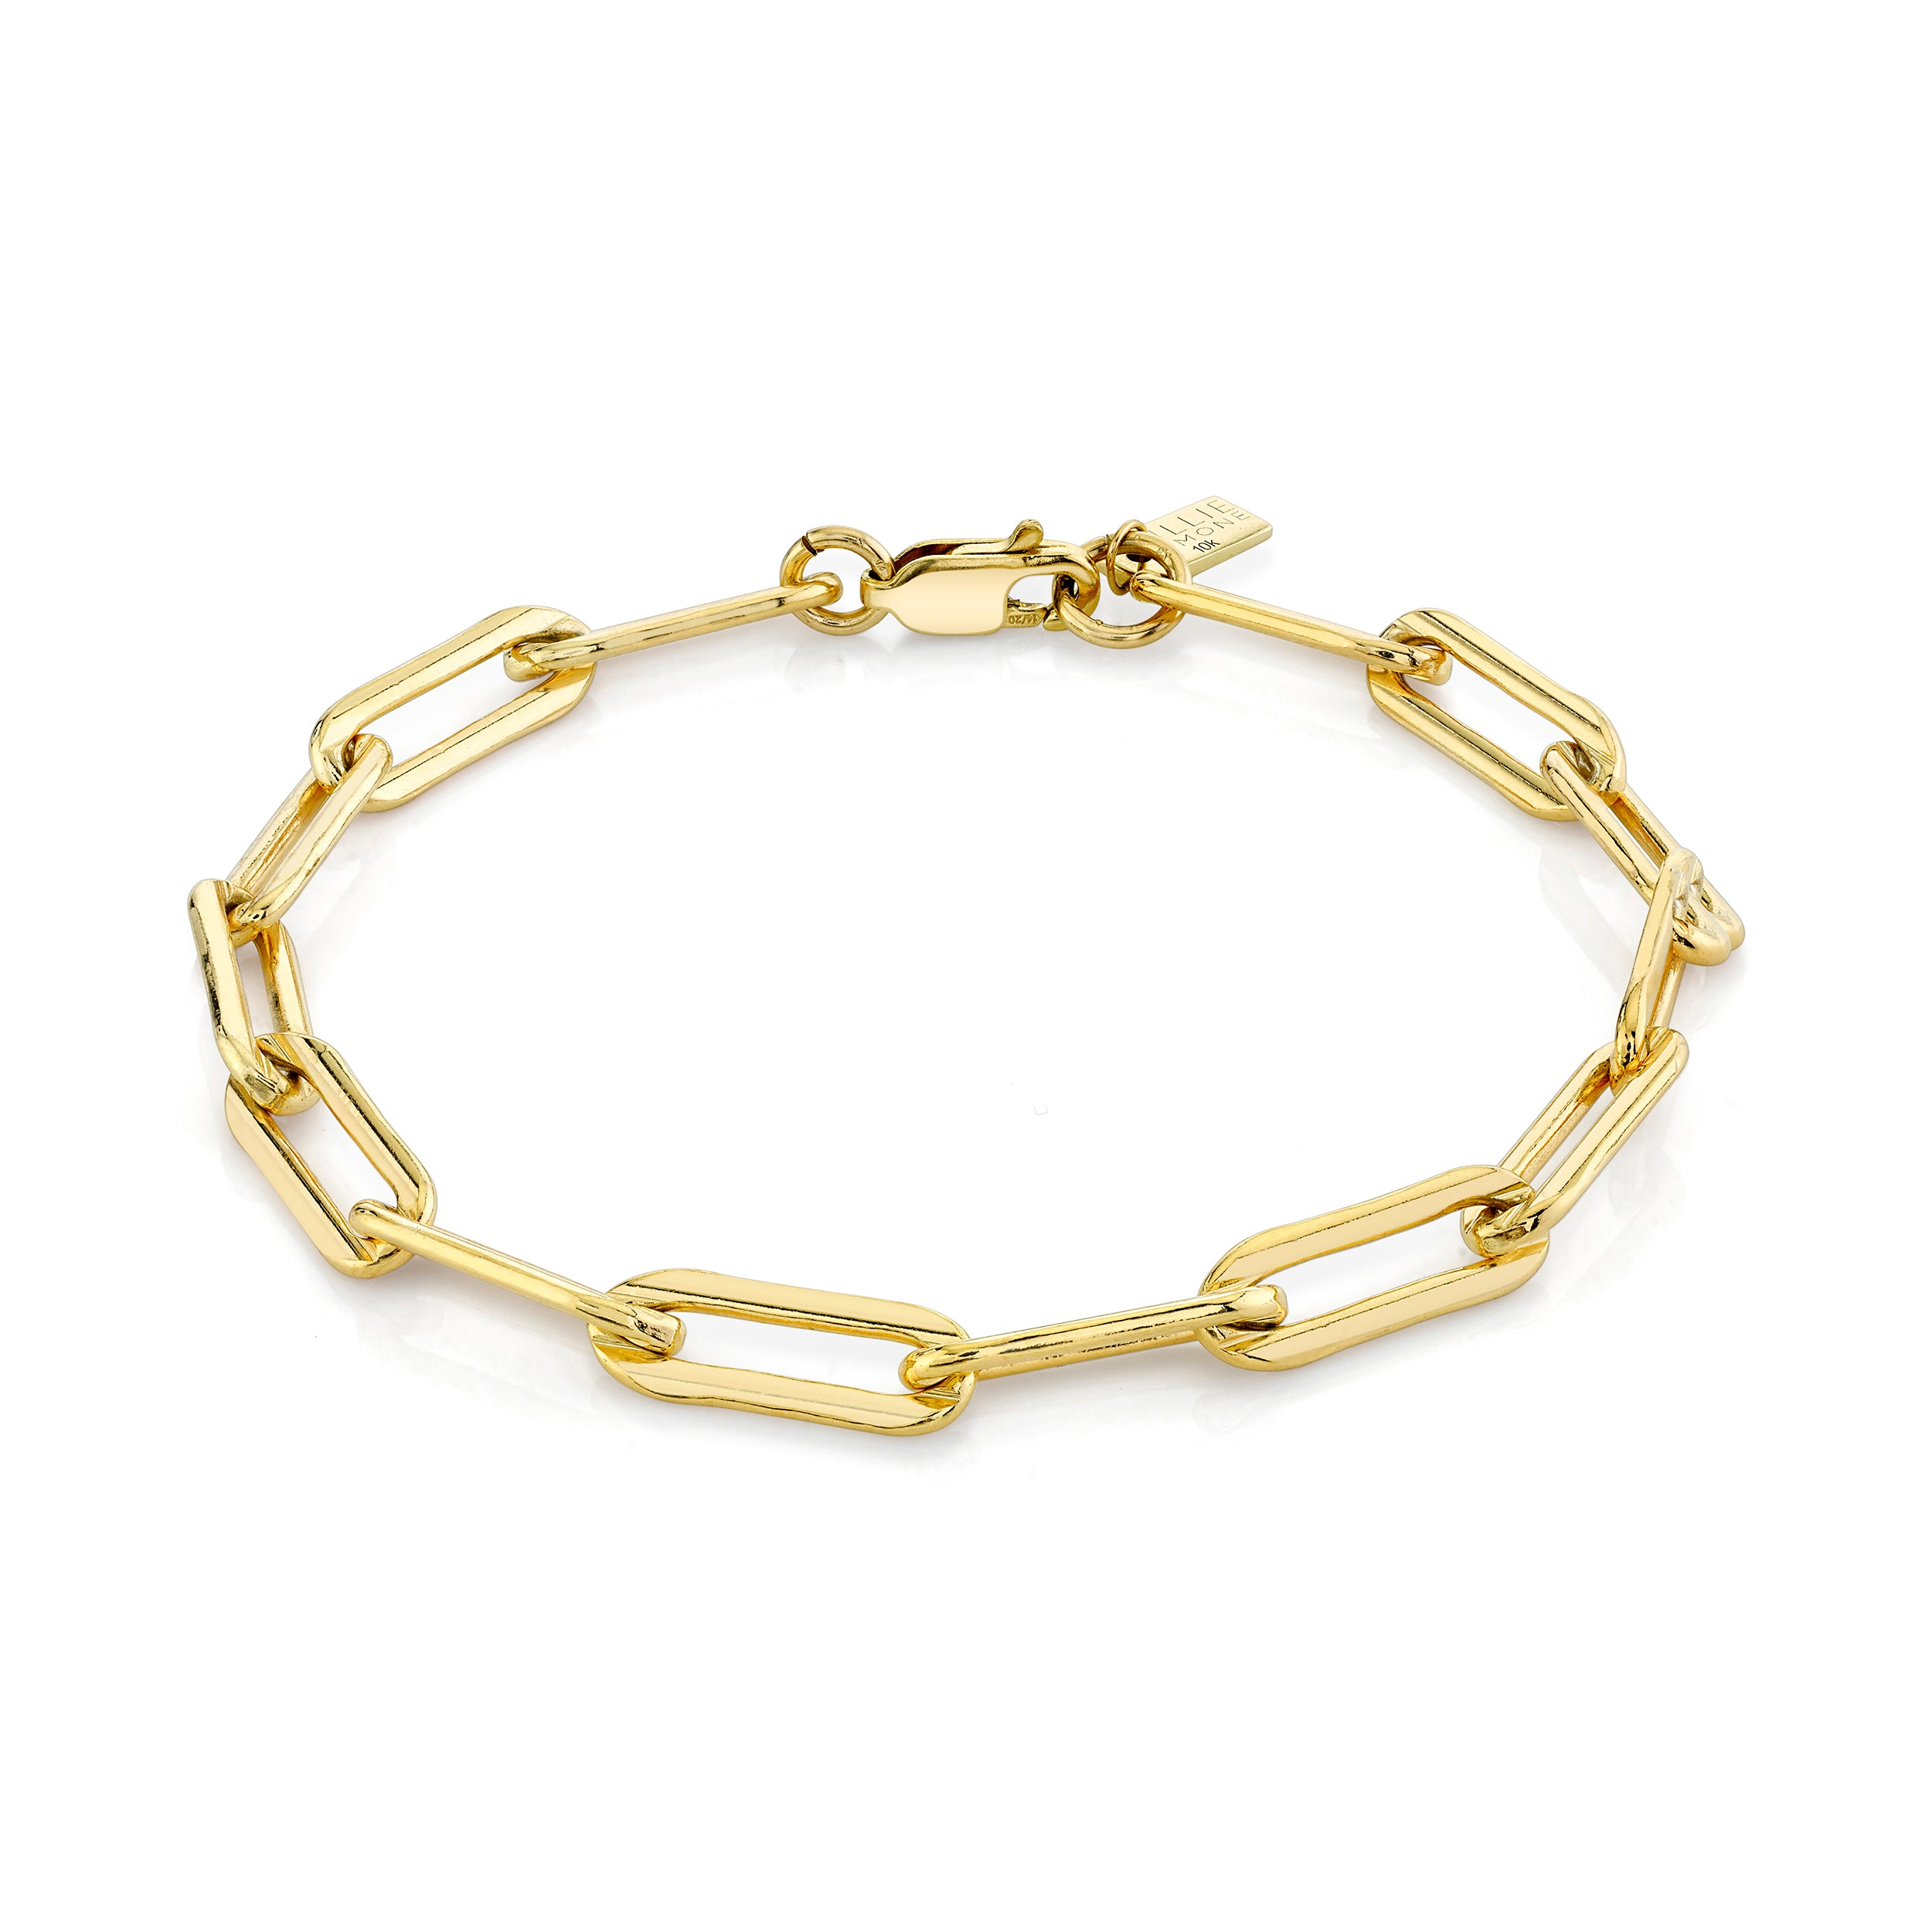 Medium Elongated Oval Link Bracelet